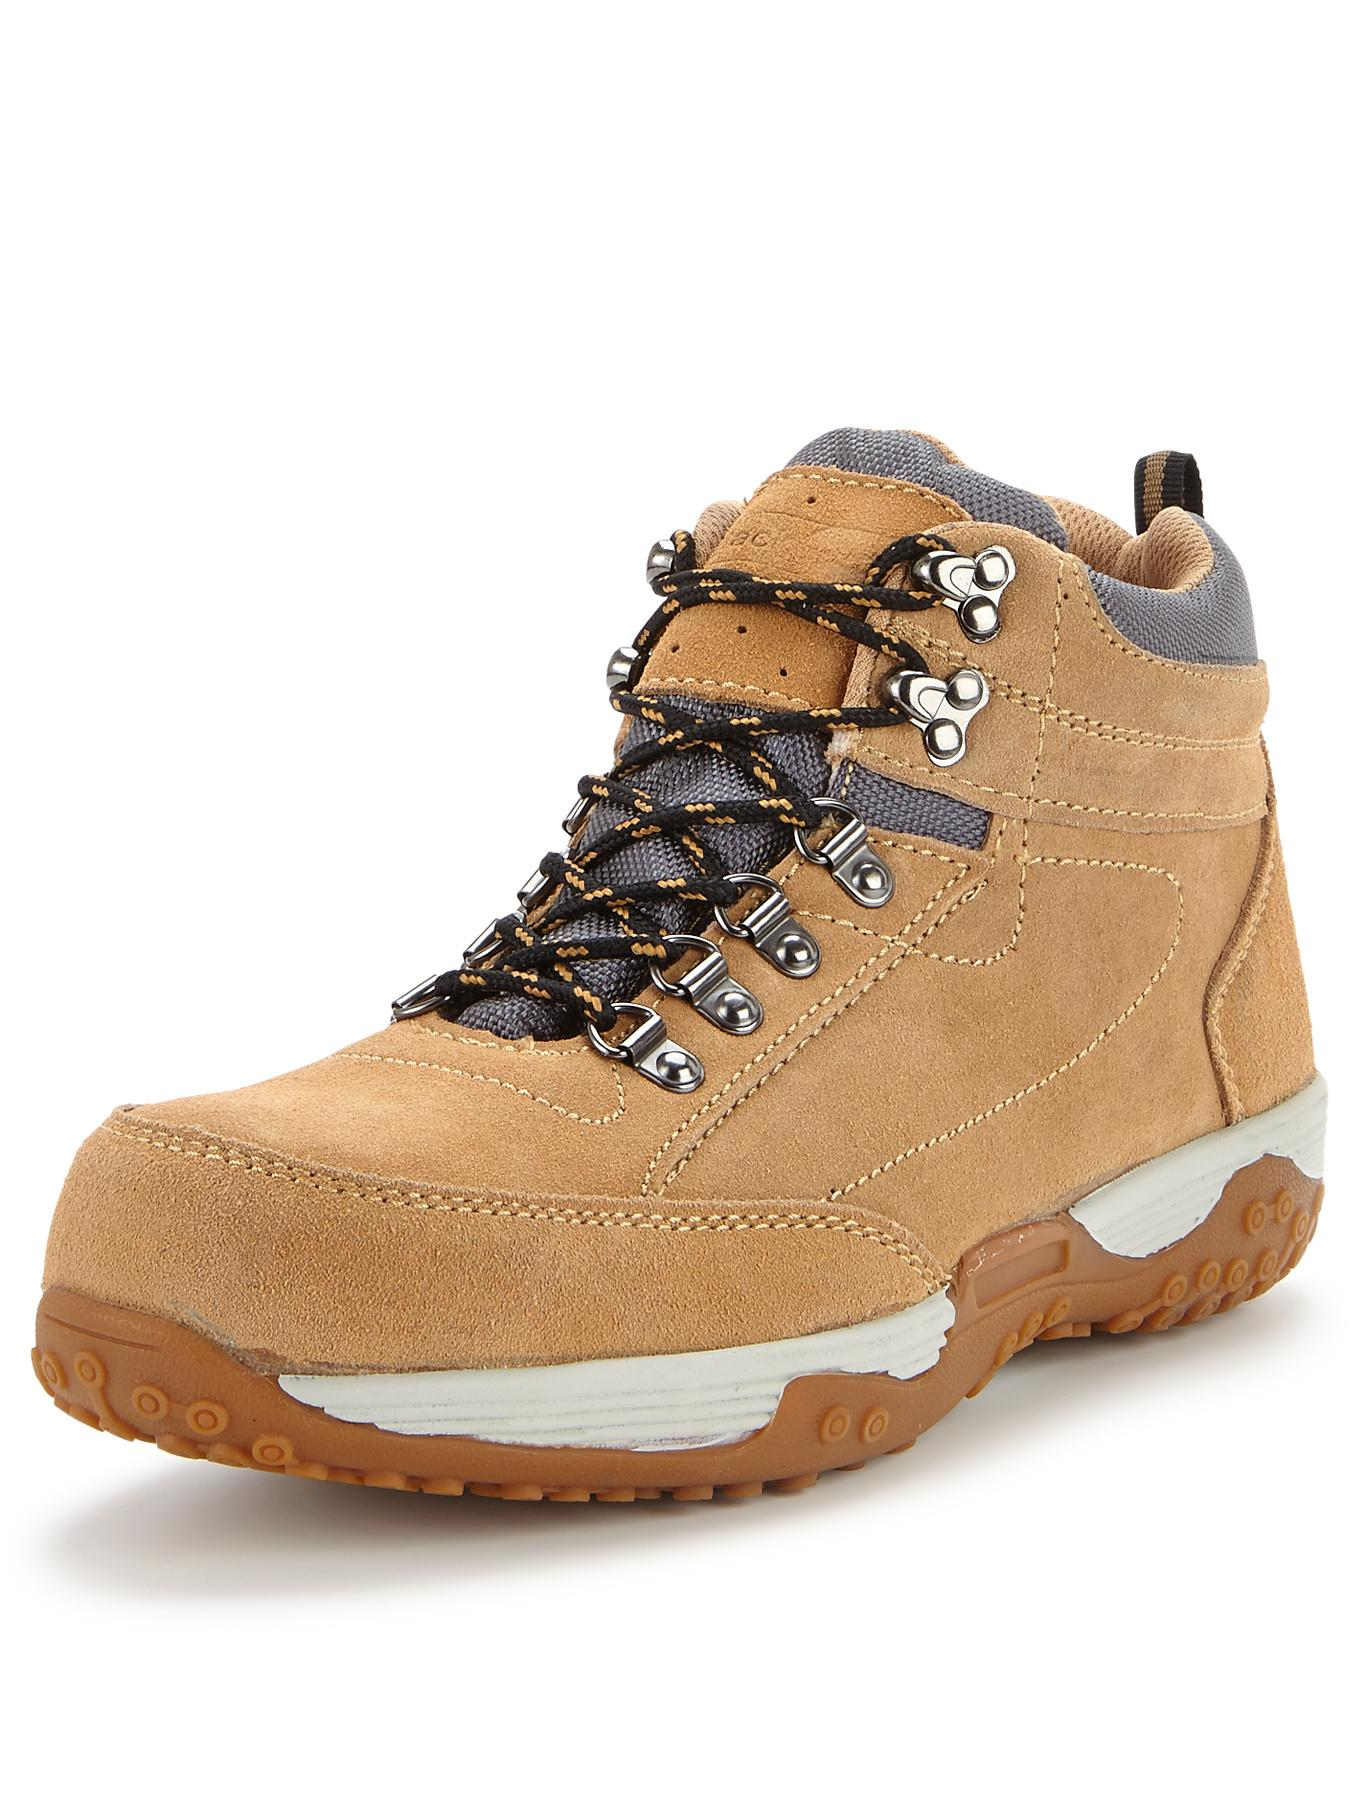 Blackrock Arizona Safety Boots - Tan, Tan